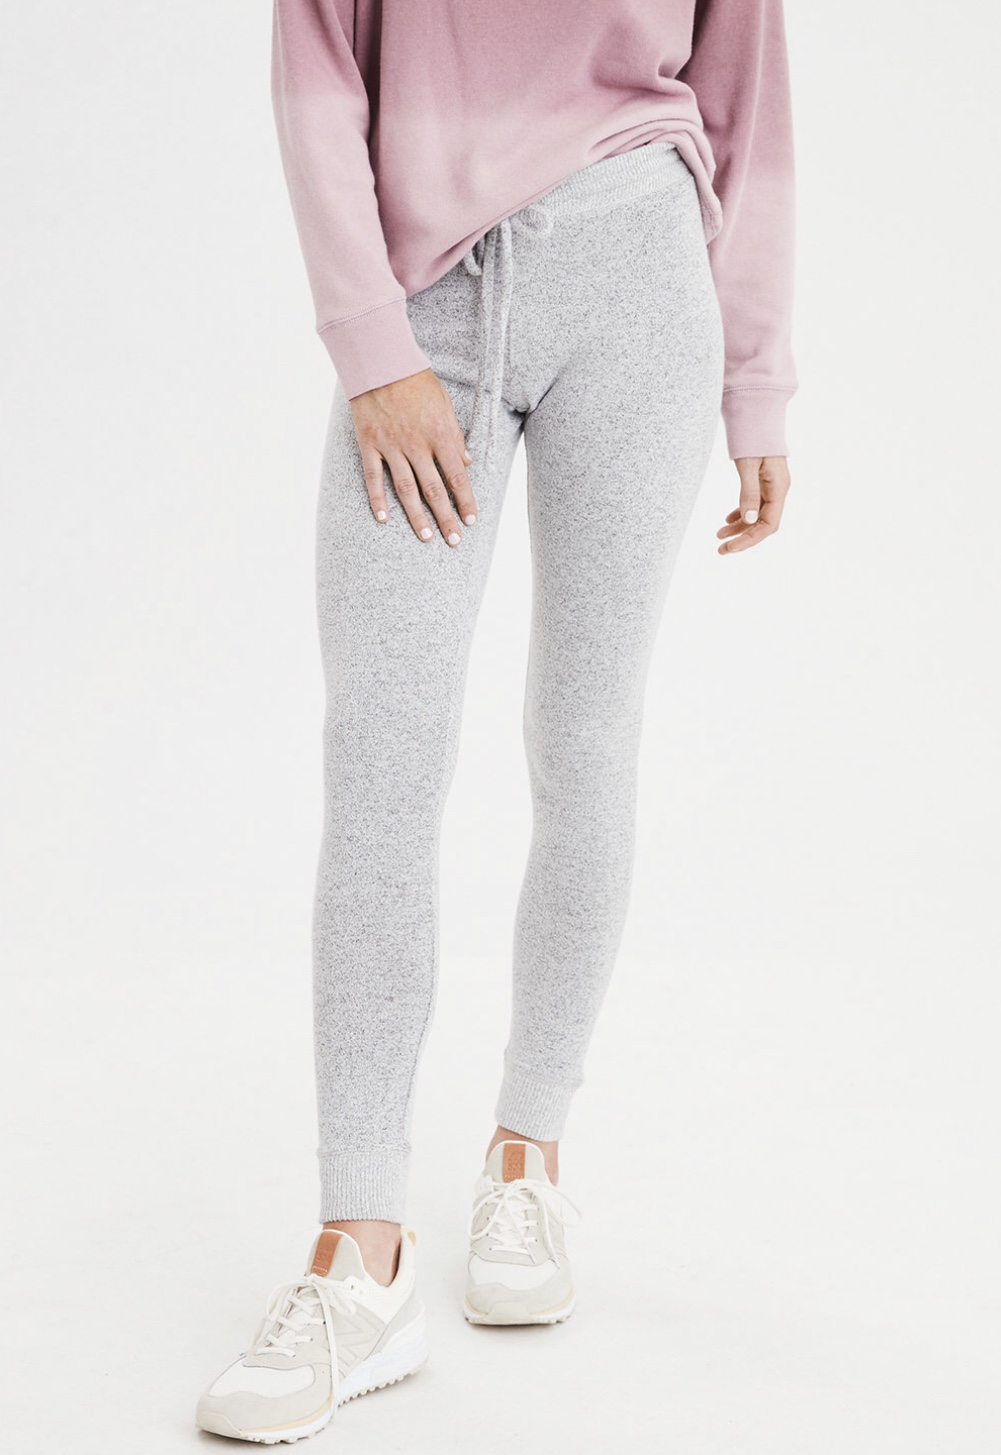 Fleece Sweater Leggings - @americaneagle $23.97